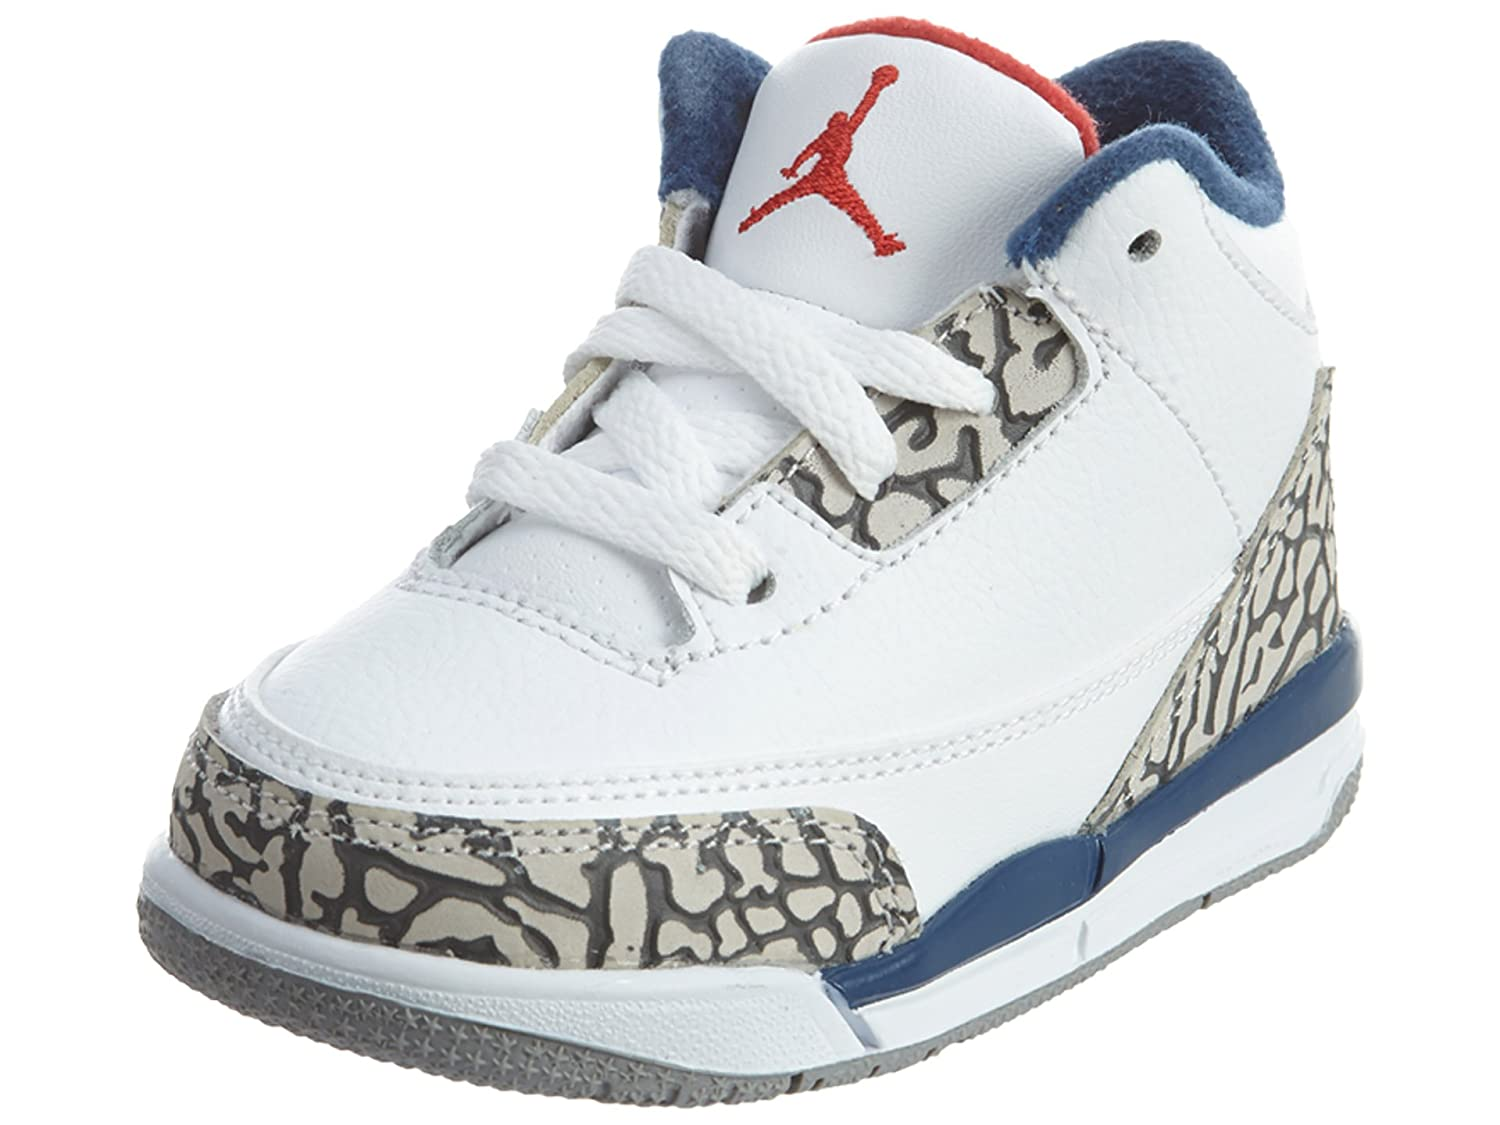 6e98e72a1cb2 JORDAN 3 RETRO BT Boys sneakers 832033-106 Nike Clothing durable service.